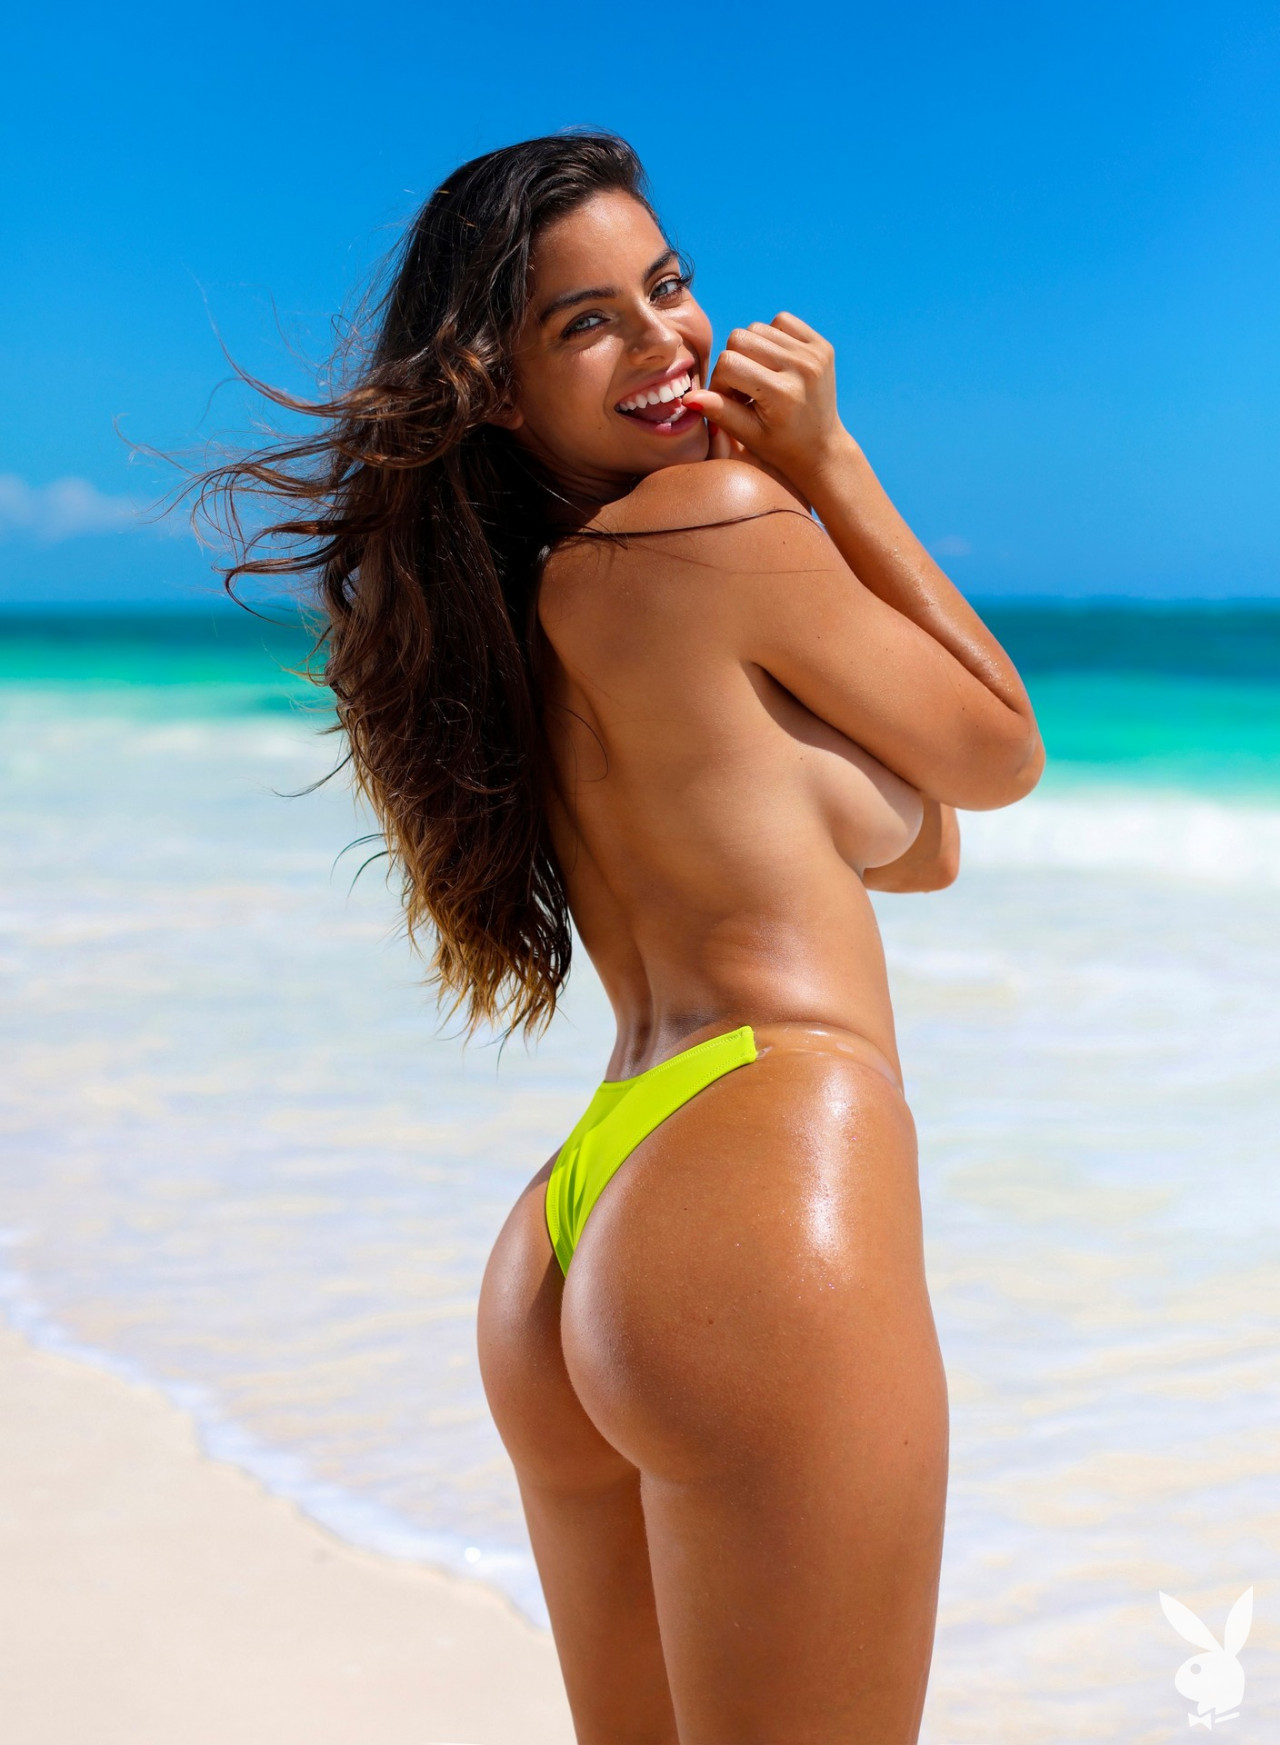 Priscilla Huggins Playmate Outtakes Playboy Plus (1)